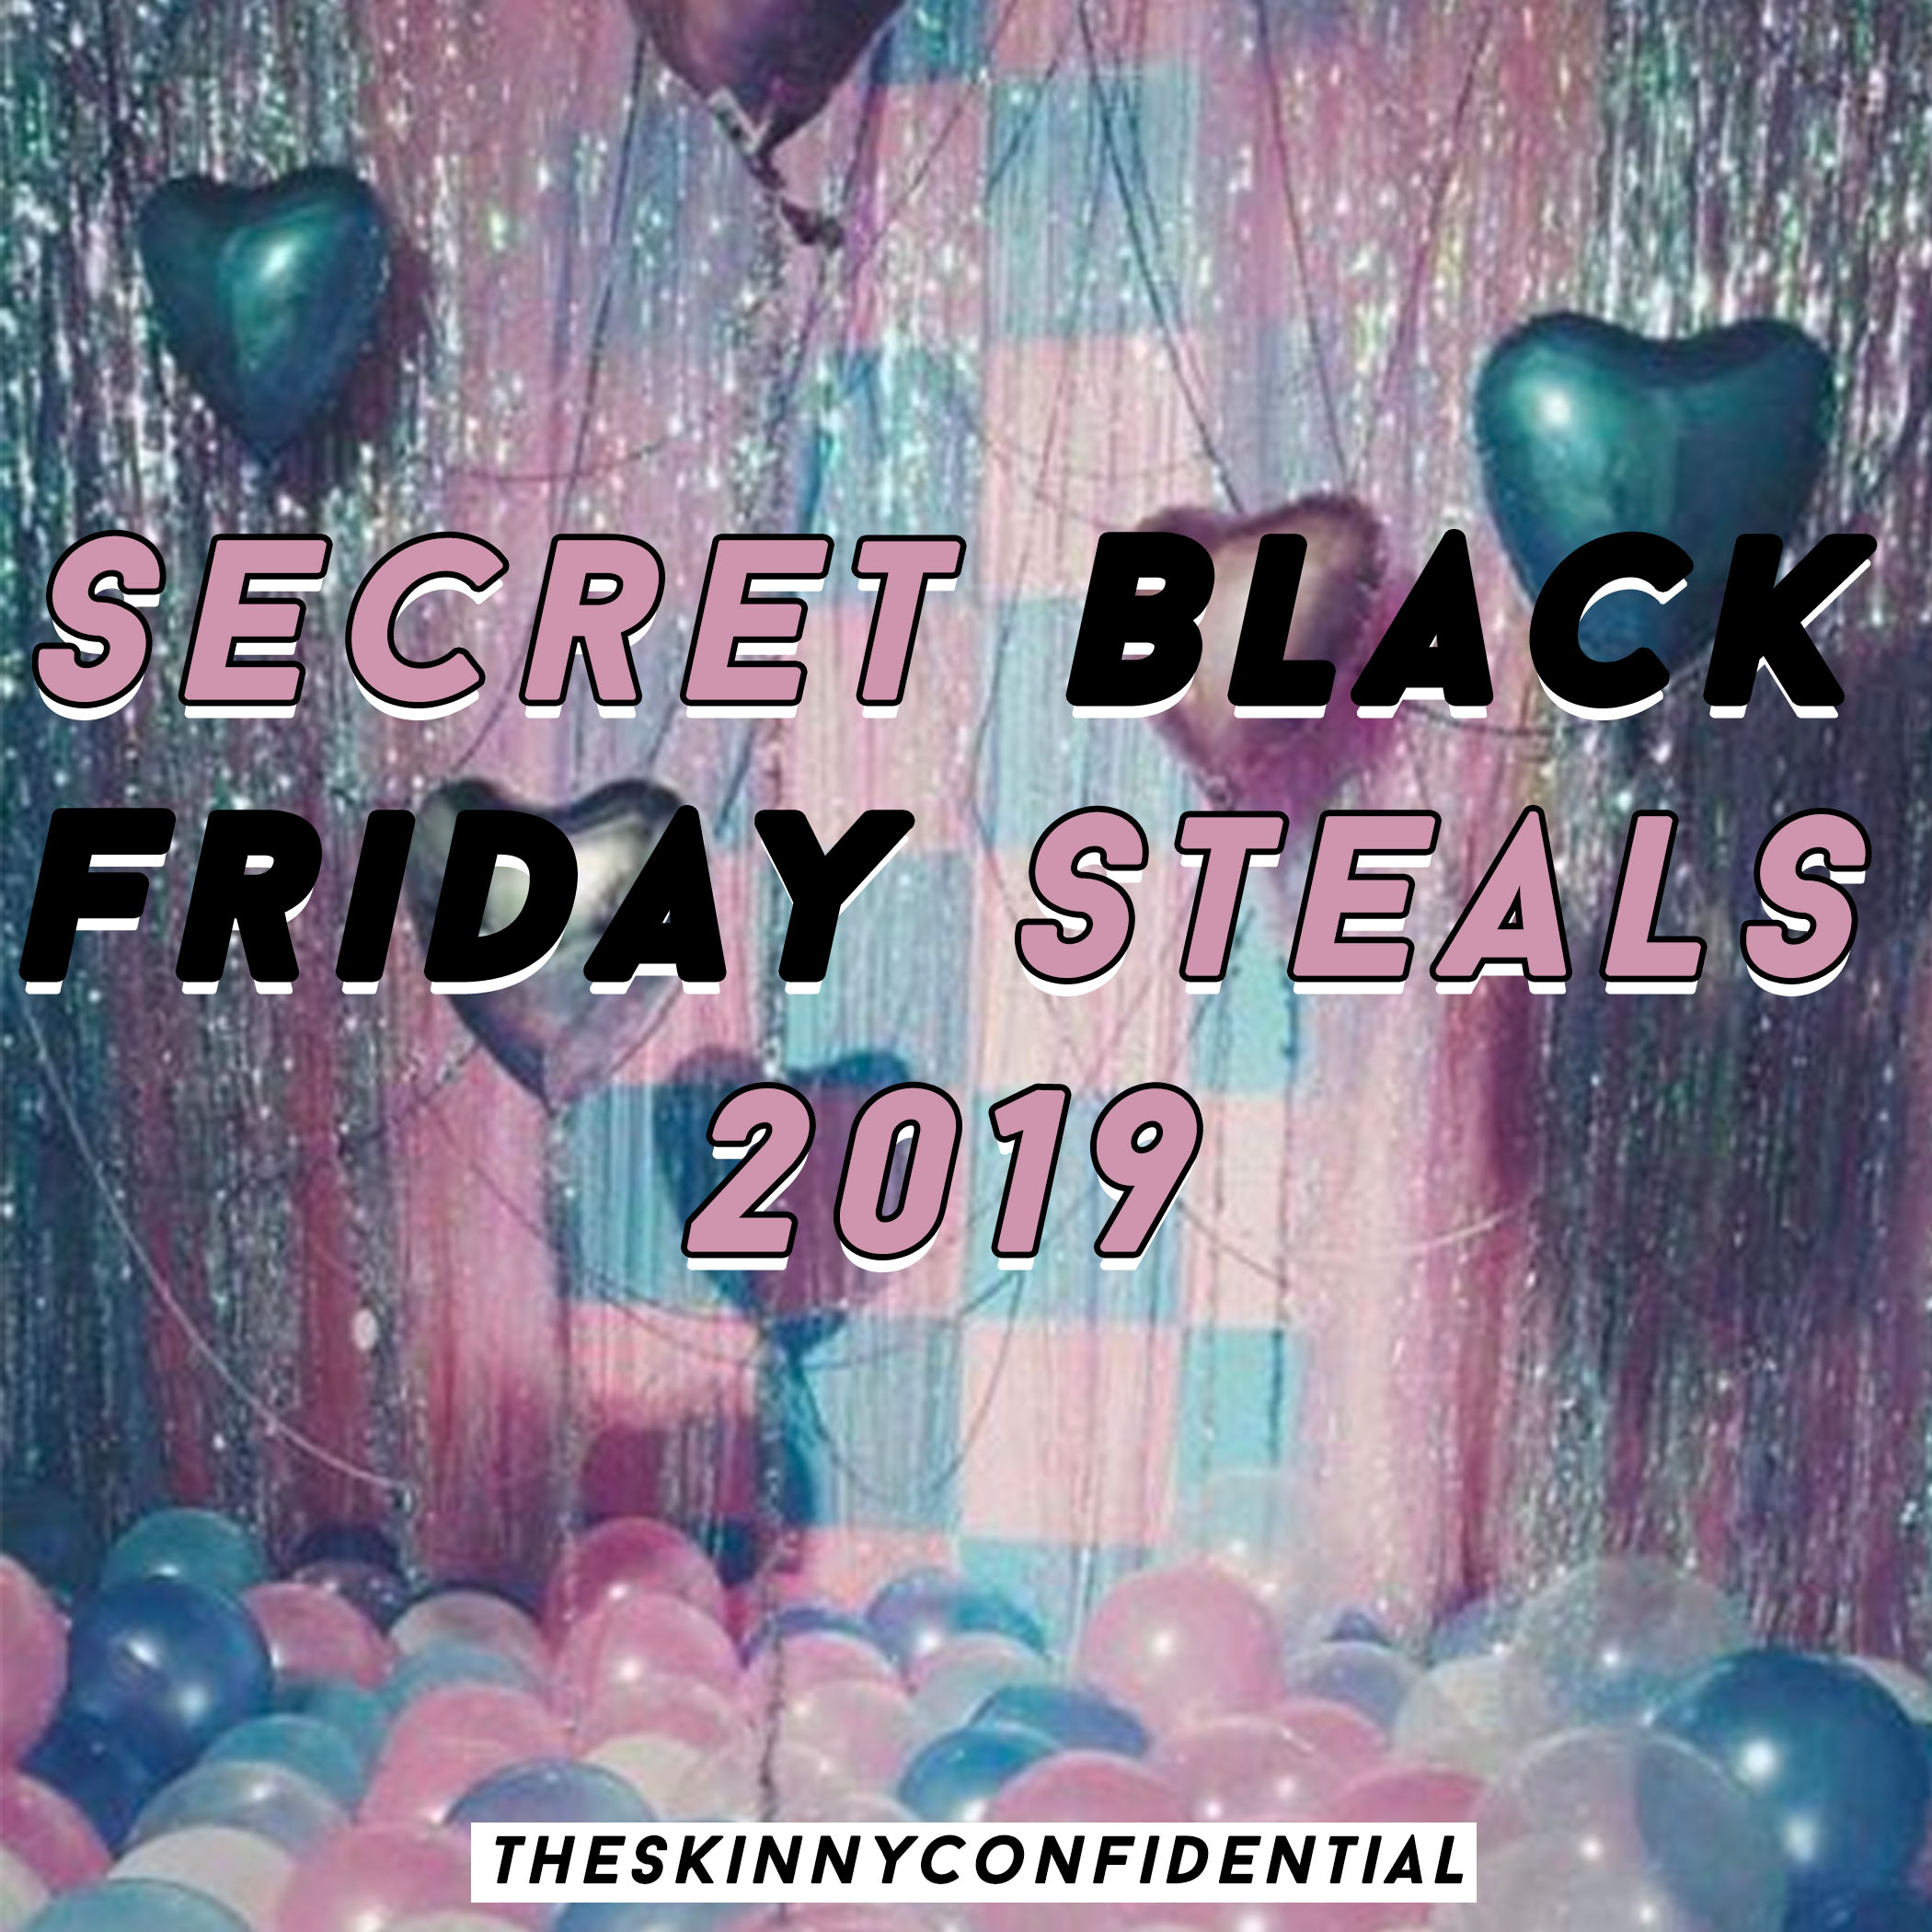 Secret Black Friday Steals